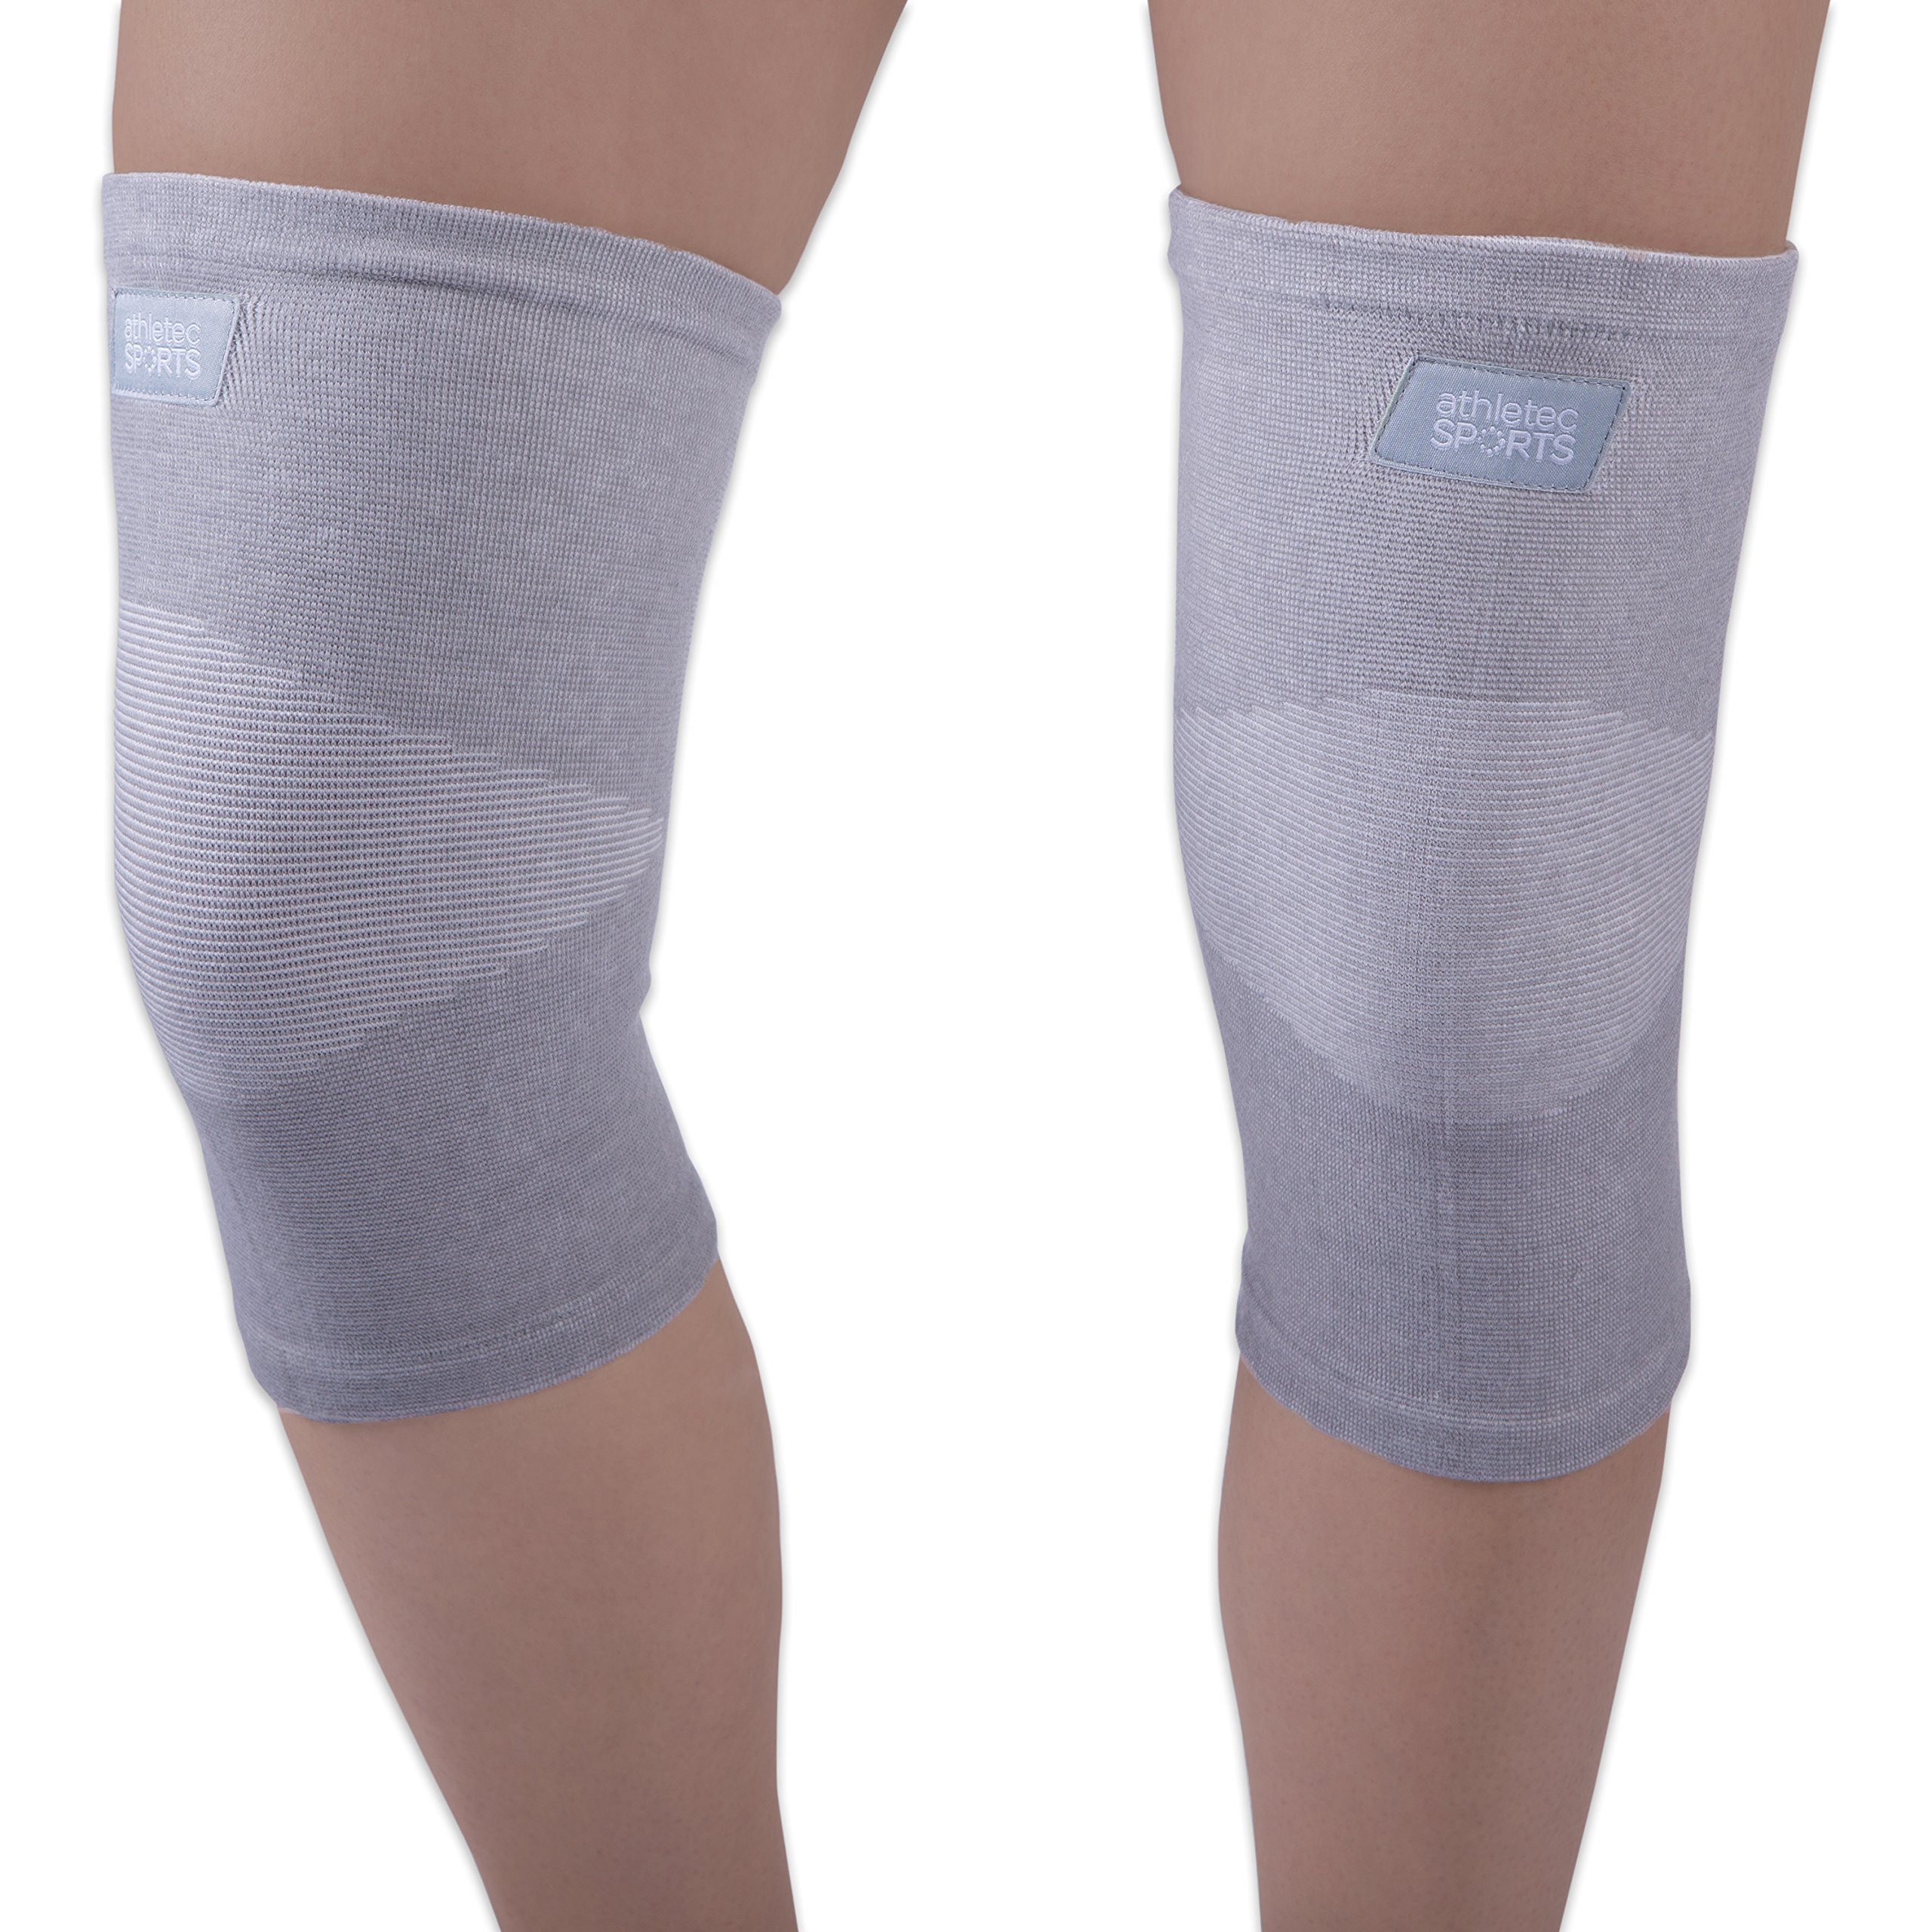 Athletec Sport Bamboo Charcoal Knee Compression Sleeve for Knee Pain, Joint Pain, Arthritis Relief, Meniscus Tear and Support for Running, Walking, Workout, Recovery - Size Large in Grey (Pair)